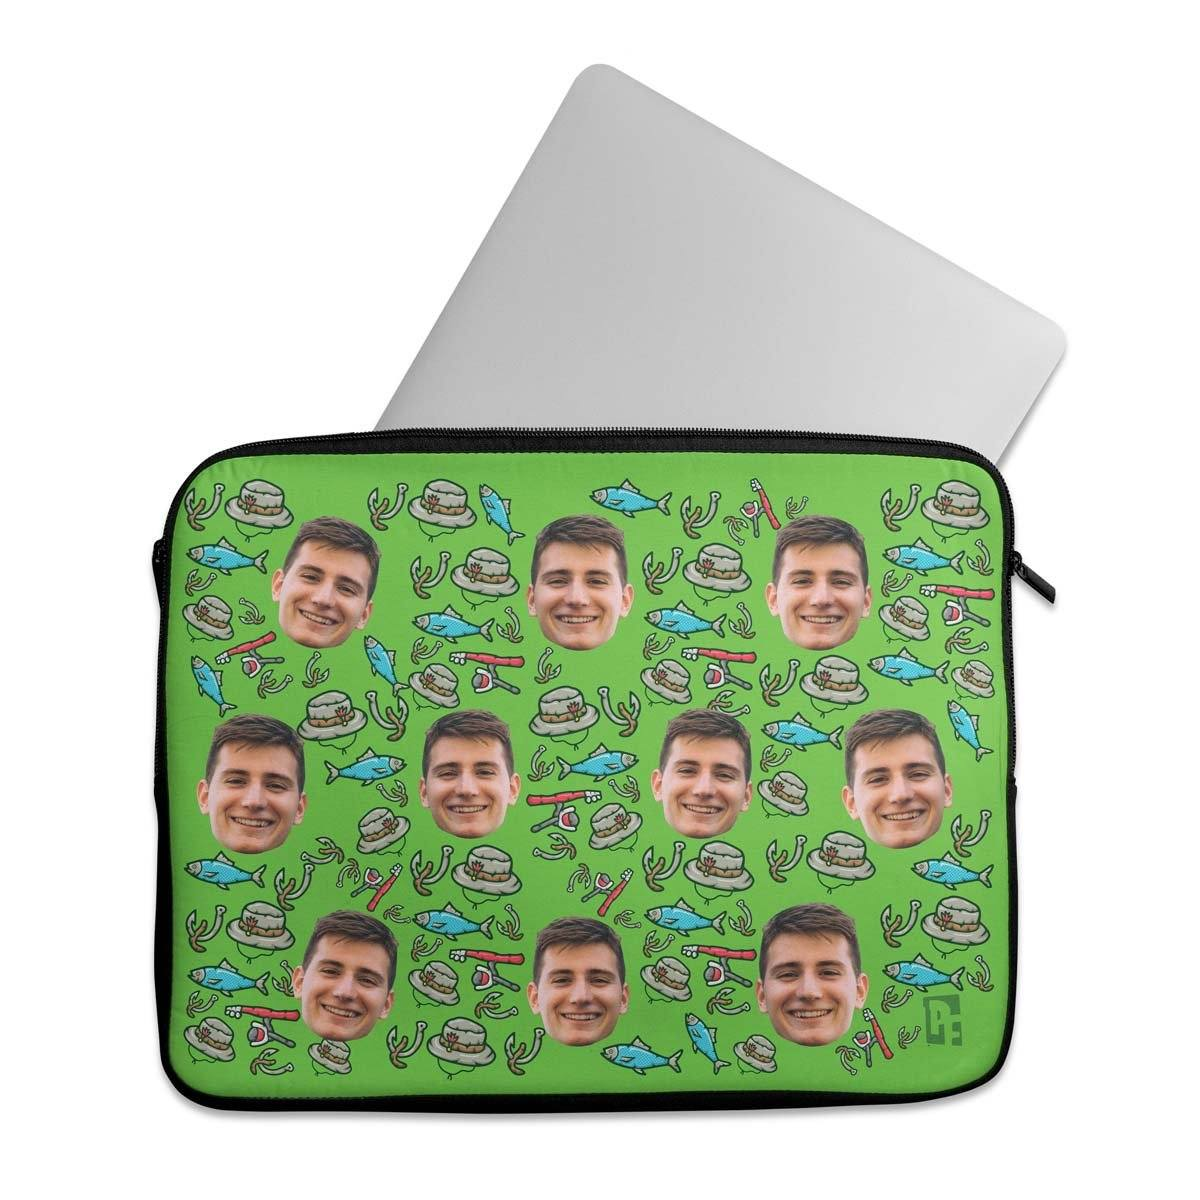 Fishing Personalized Laptop Sleeves